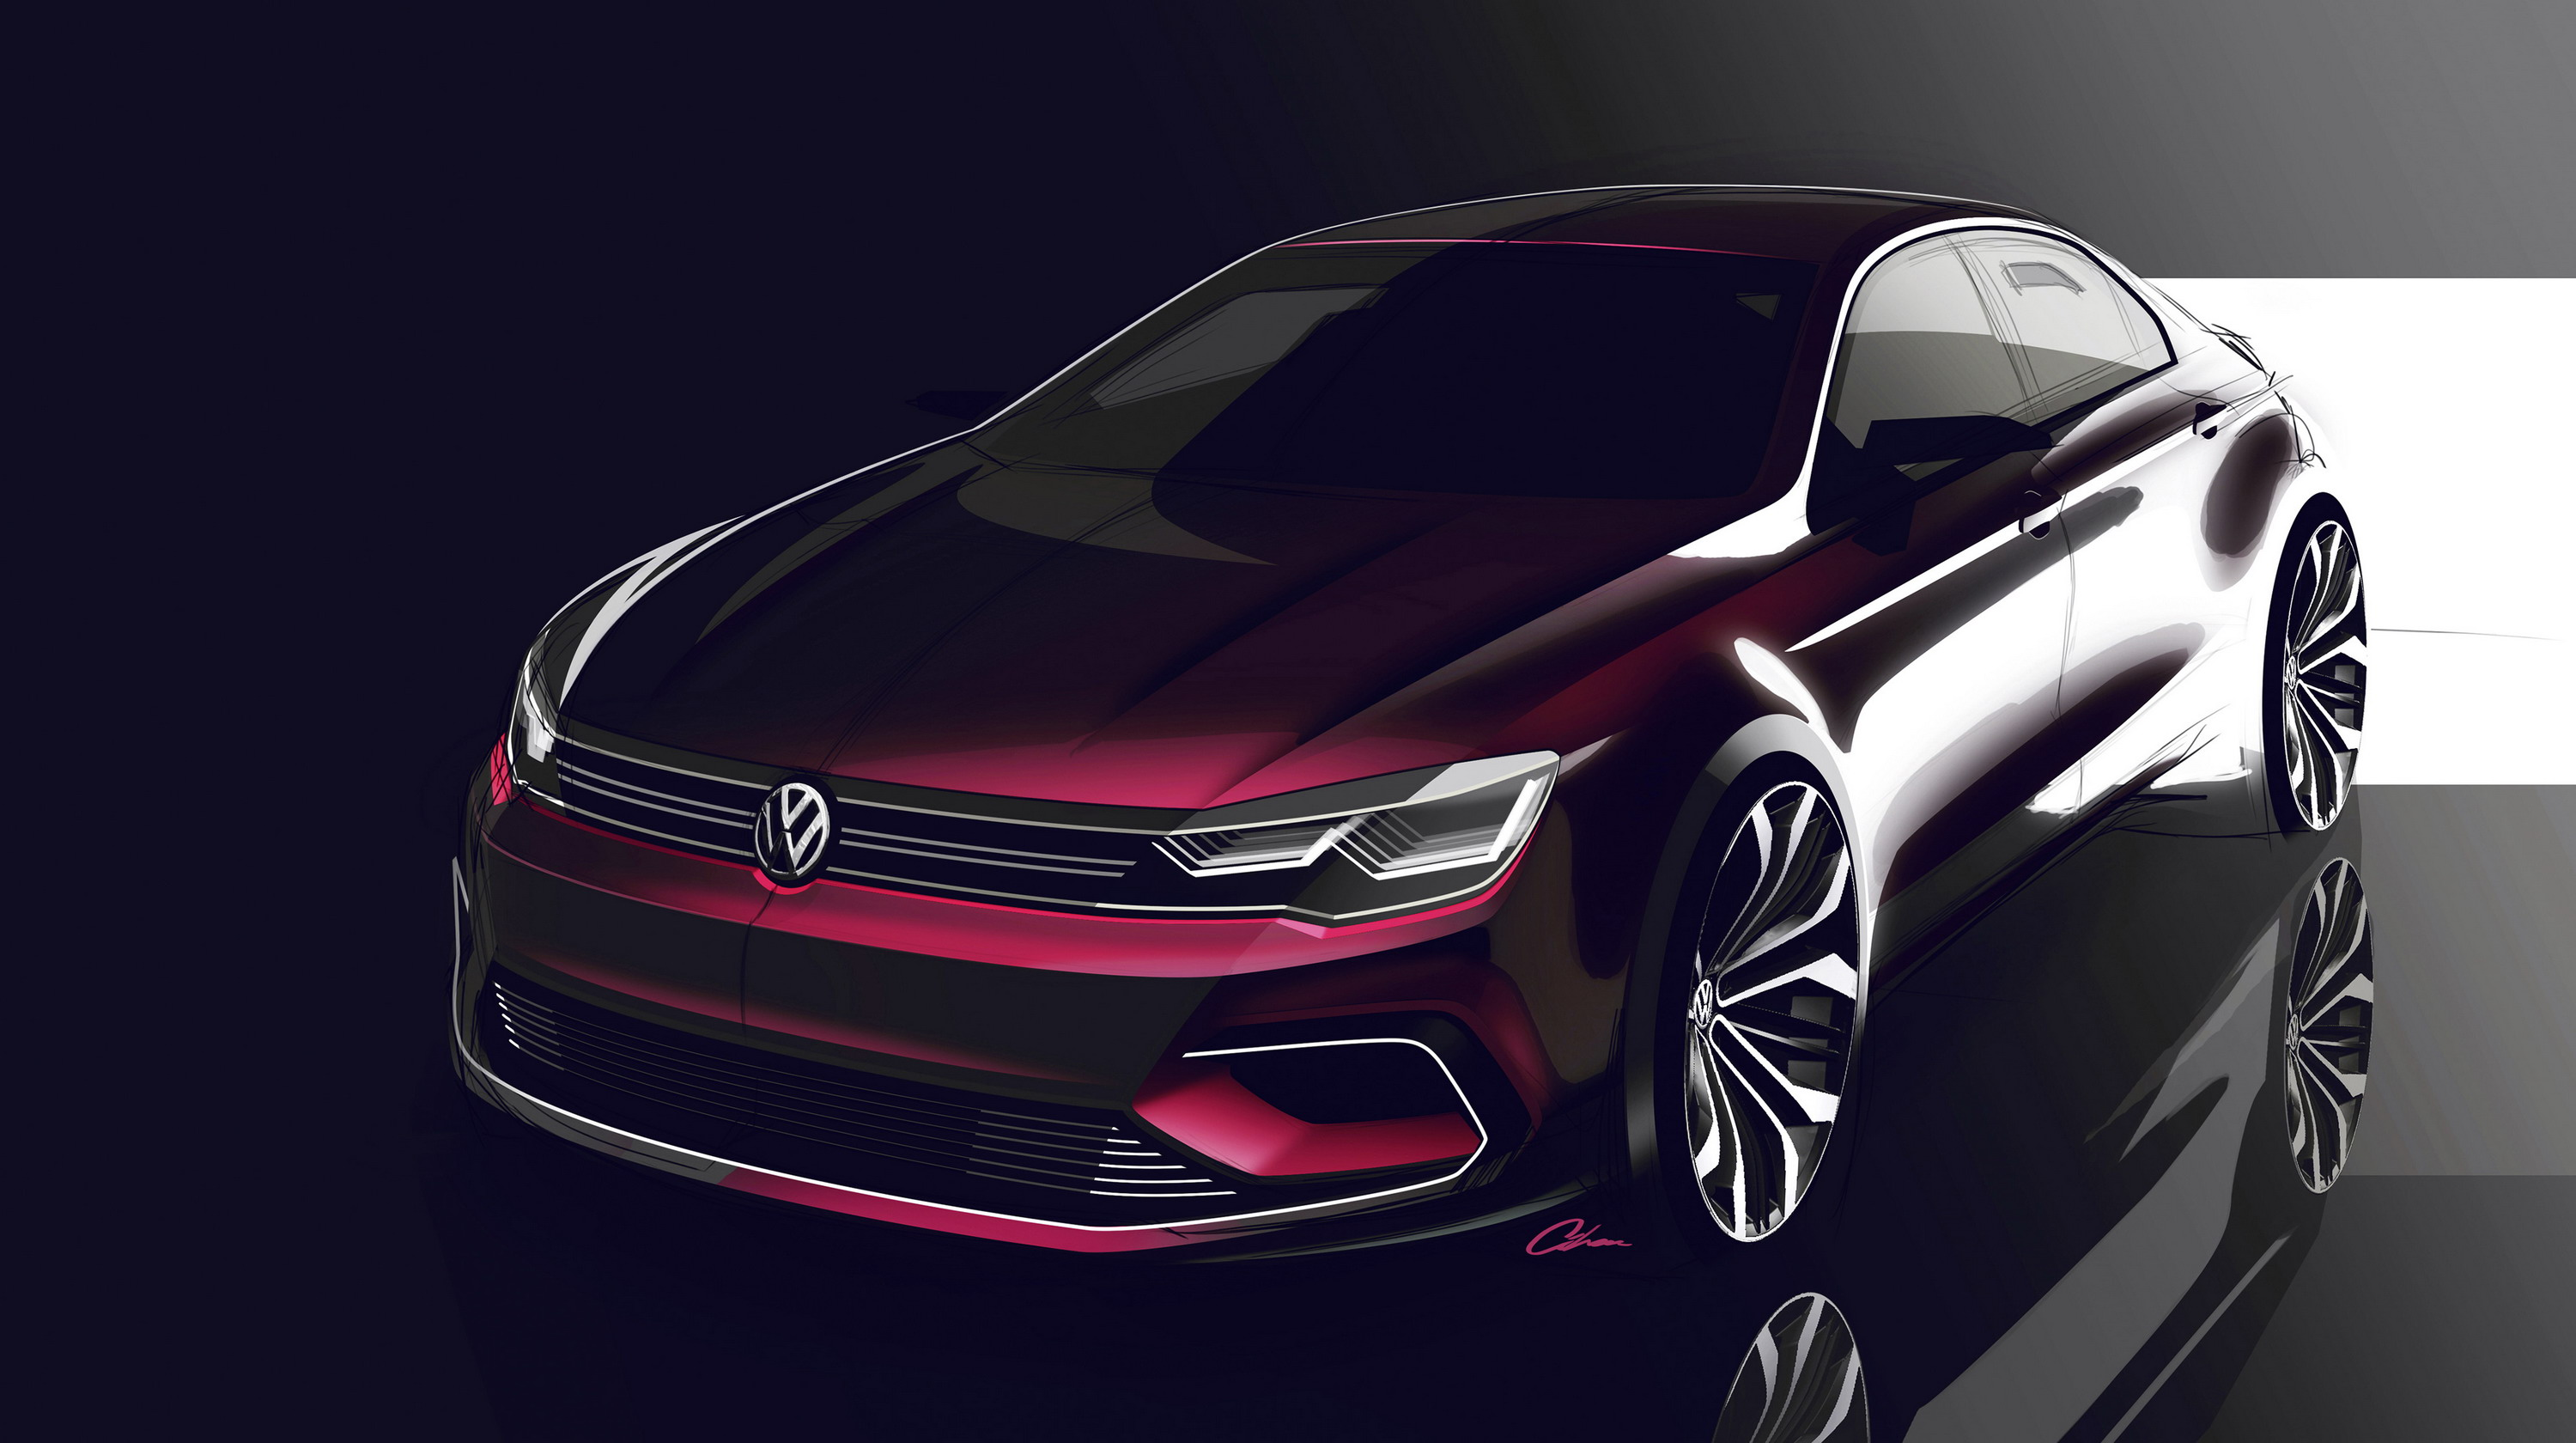 Next generation volkswagen jetta will be a four door coupe picture for as long as its been around the jetta has always been the notchback sibling to the golf but that could change when the next generation jetta is publicscrutiny Gallery